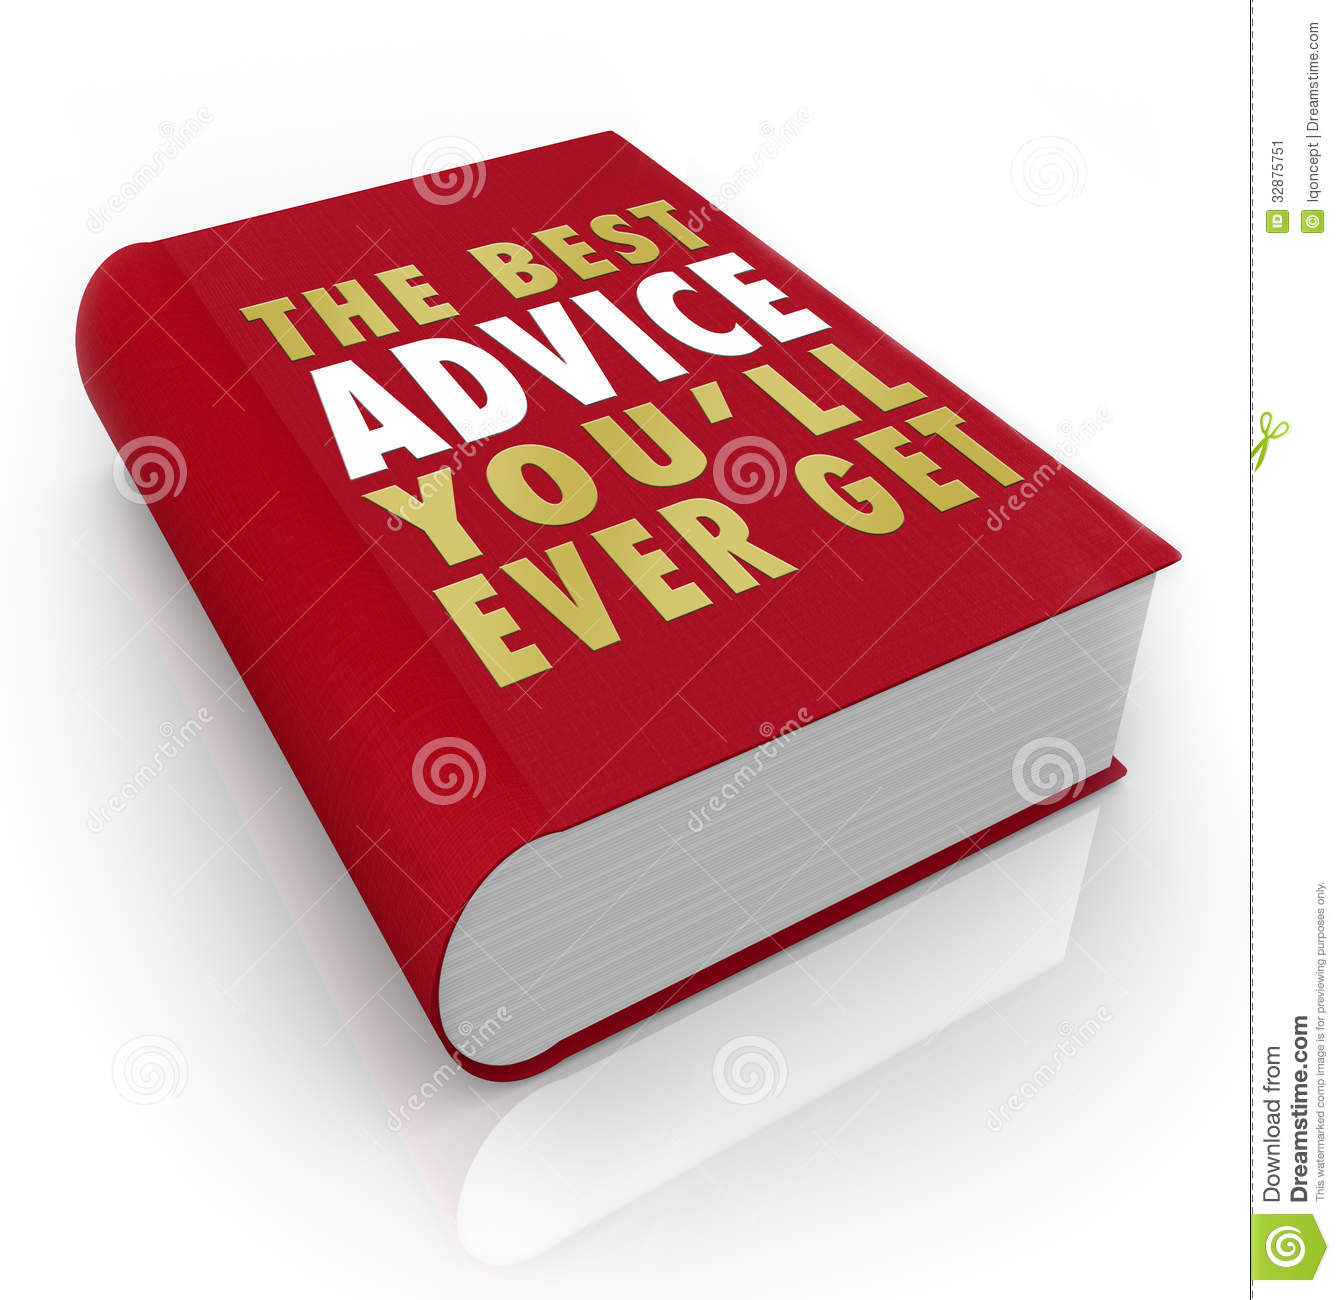 best advice you ever got essay Psychology advising essays title: good advice my account good advice length: 846 words defining good advice essay - defining good advice perhaps good advice is best defined as advice that fits into our jlutts got his advice from a friend, while chris lefstad got his.